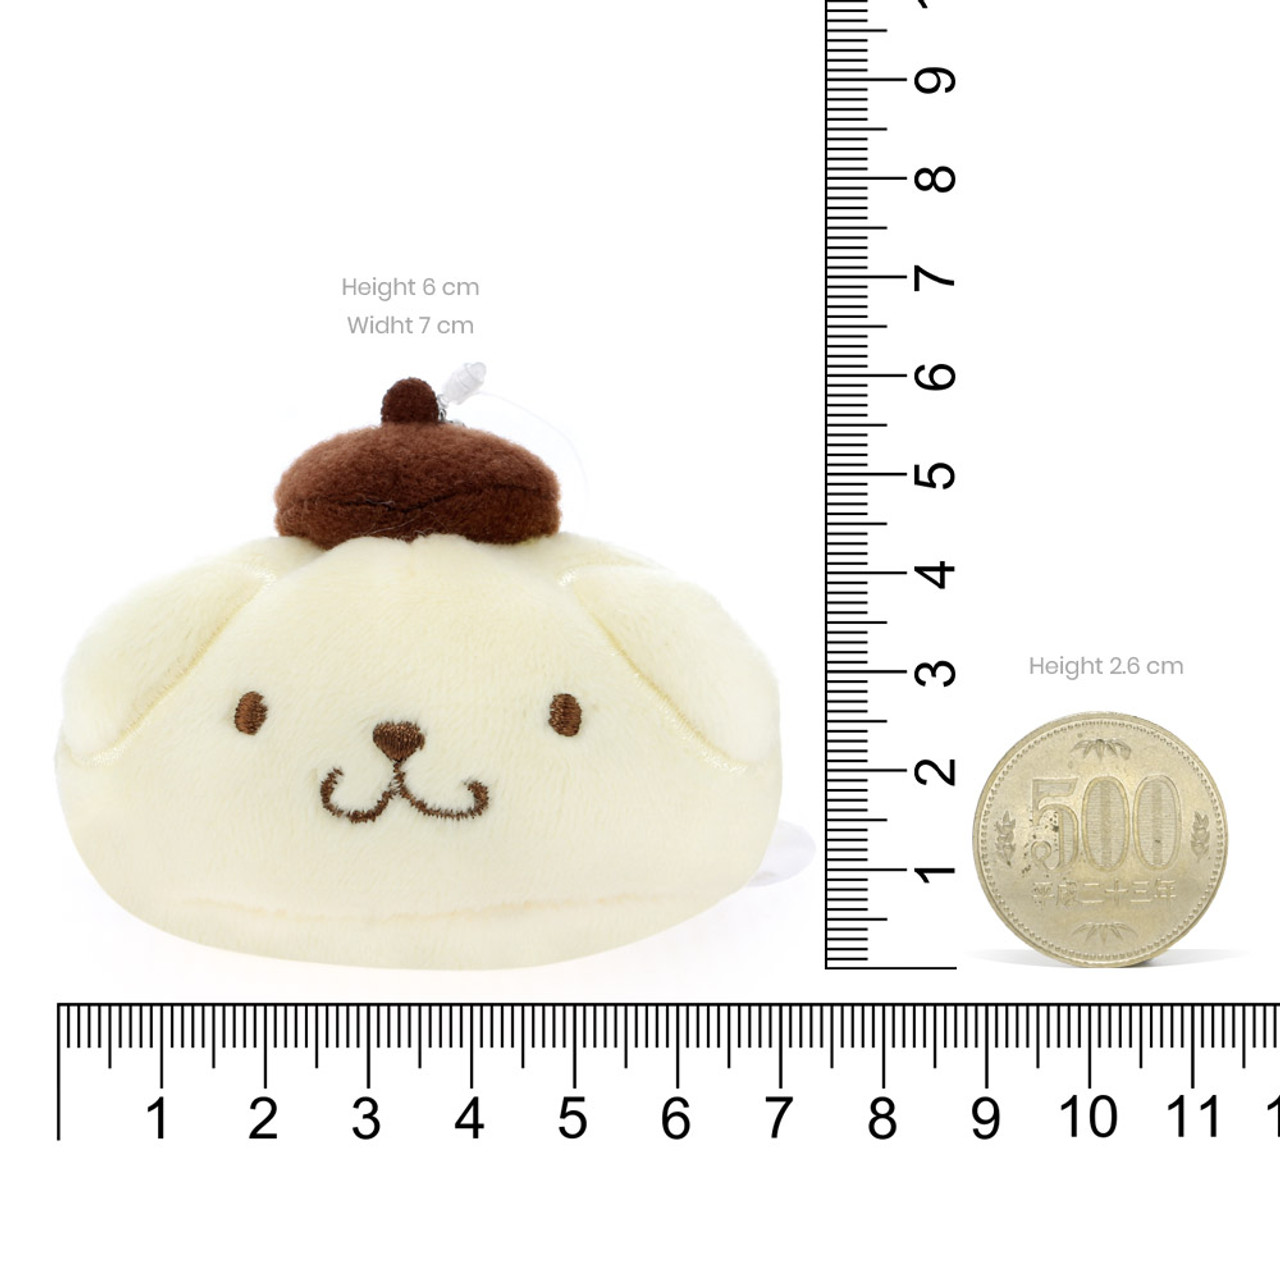 Pom Pom Purin Steamed Buns Mascot Doll Charms ( Proportion )